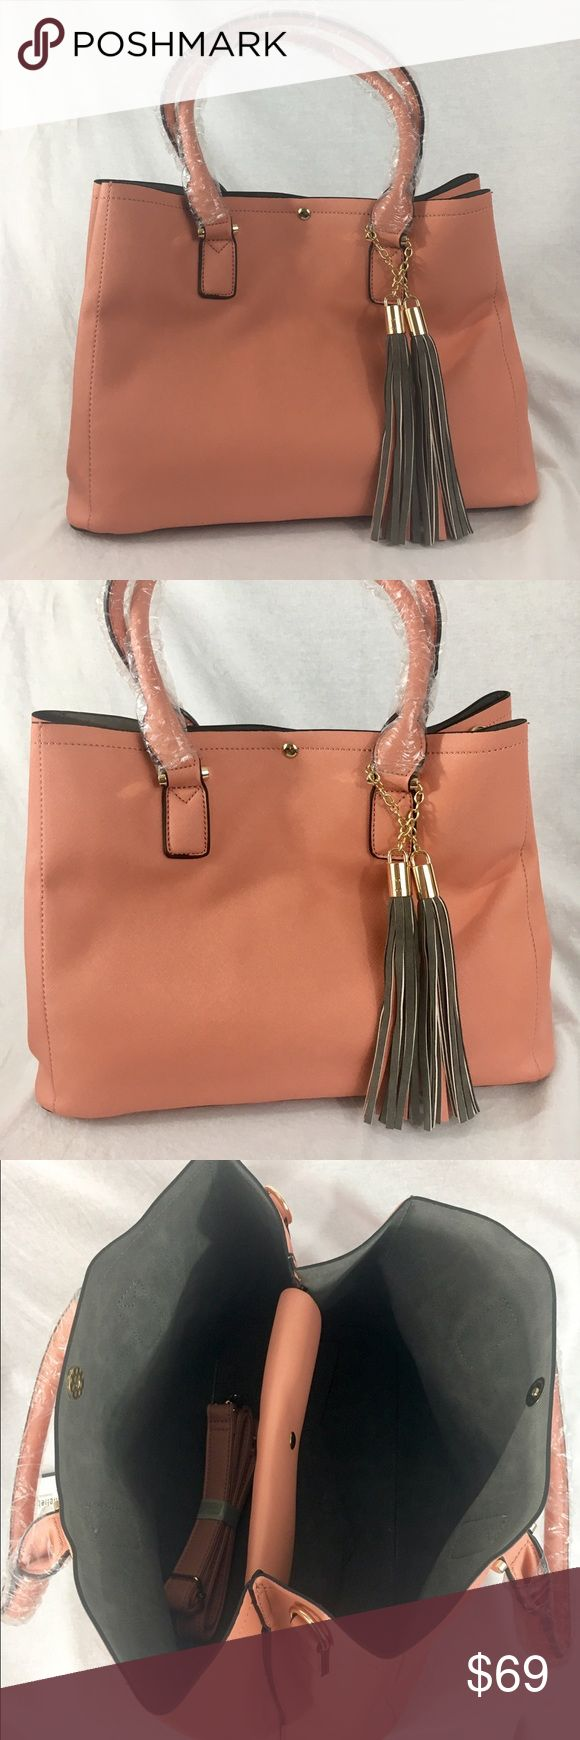 """Vegan Leather Blush Melie Bianco Handbag Blush Colored (soft peach). Smooth gray interior with gold-plated hardware. Spacious. Dimensions: 10.5""""L x 13""""W x 7"""" (base). Brand New! Vegan Leather. Designer bag by Melie Bianco. Melie Bianco Bags Shoulder Bags"""